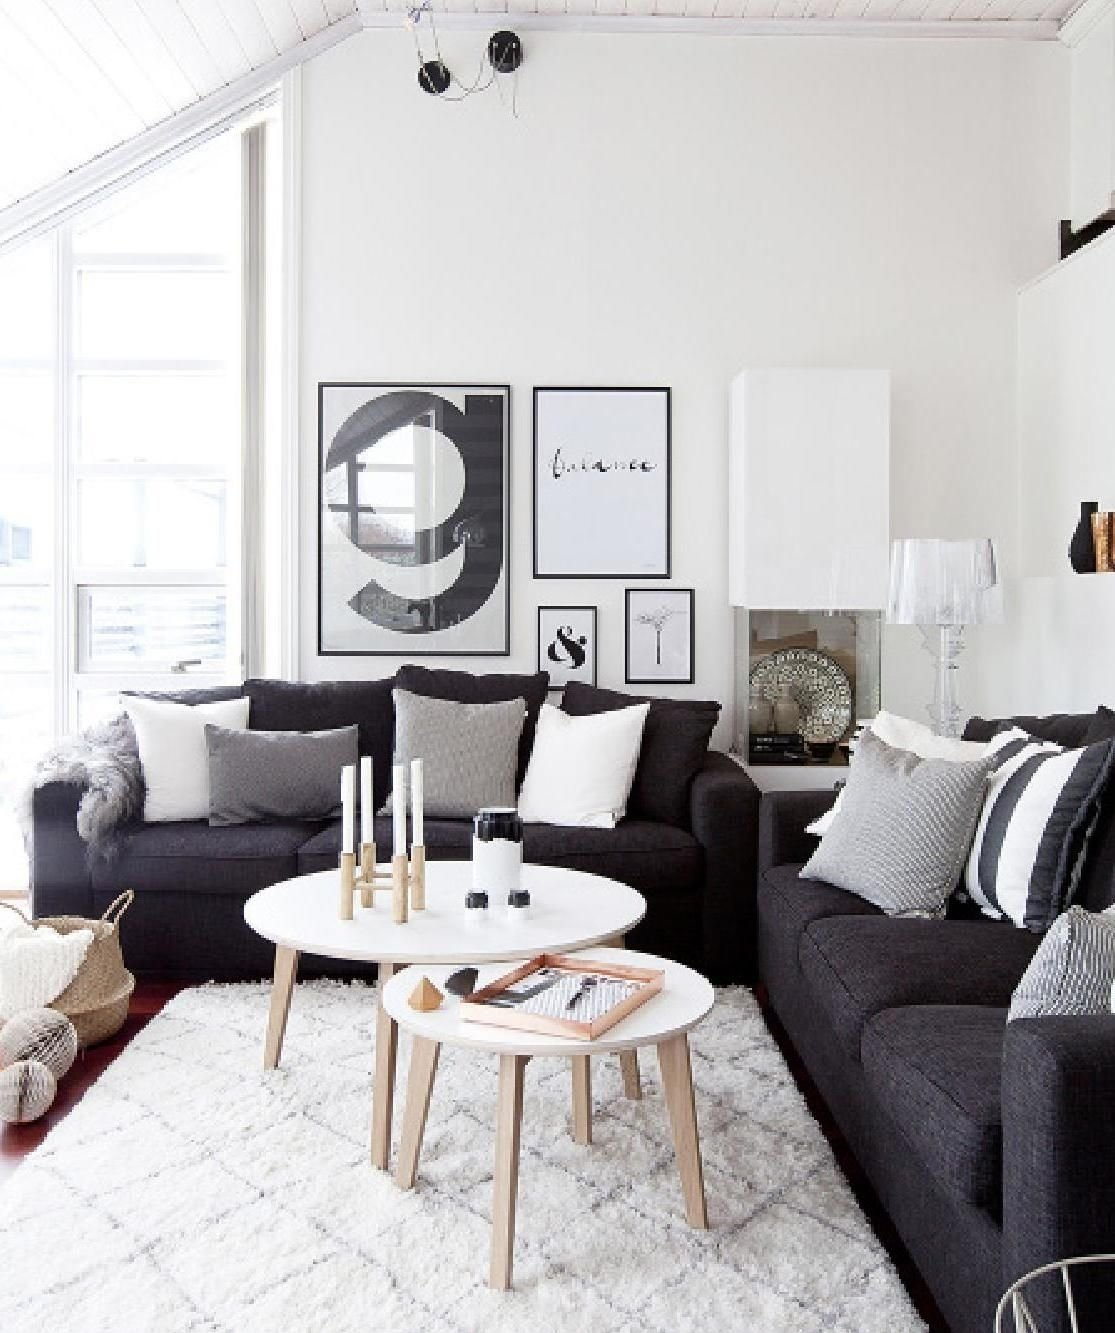 10 Fashionable Black Couch Living Room Ideas nibhjemme 6 living rooms room and interiors